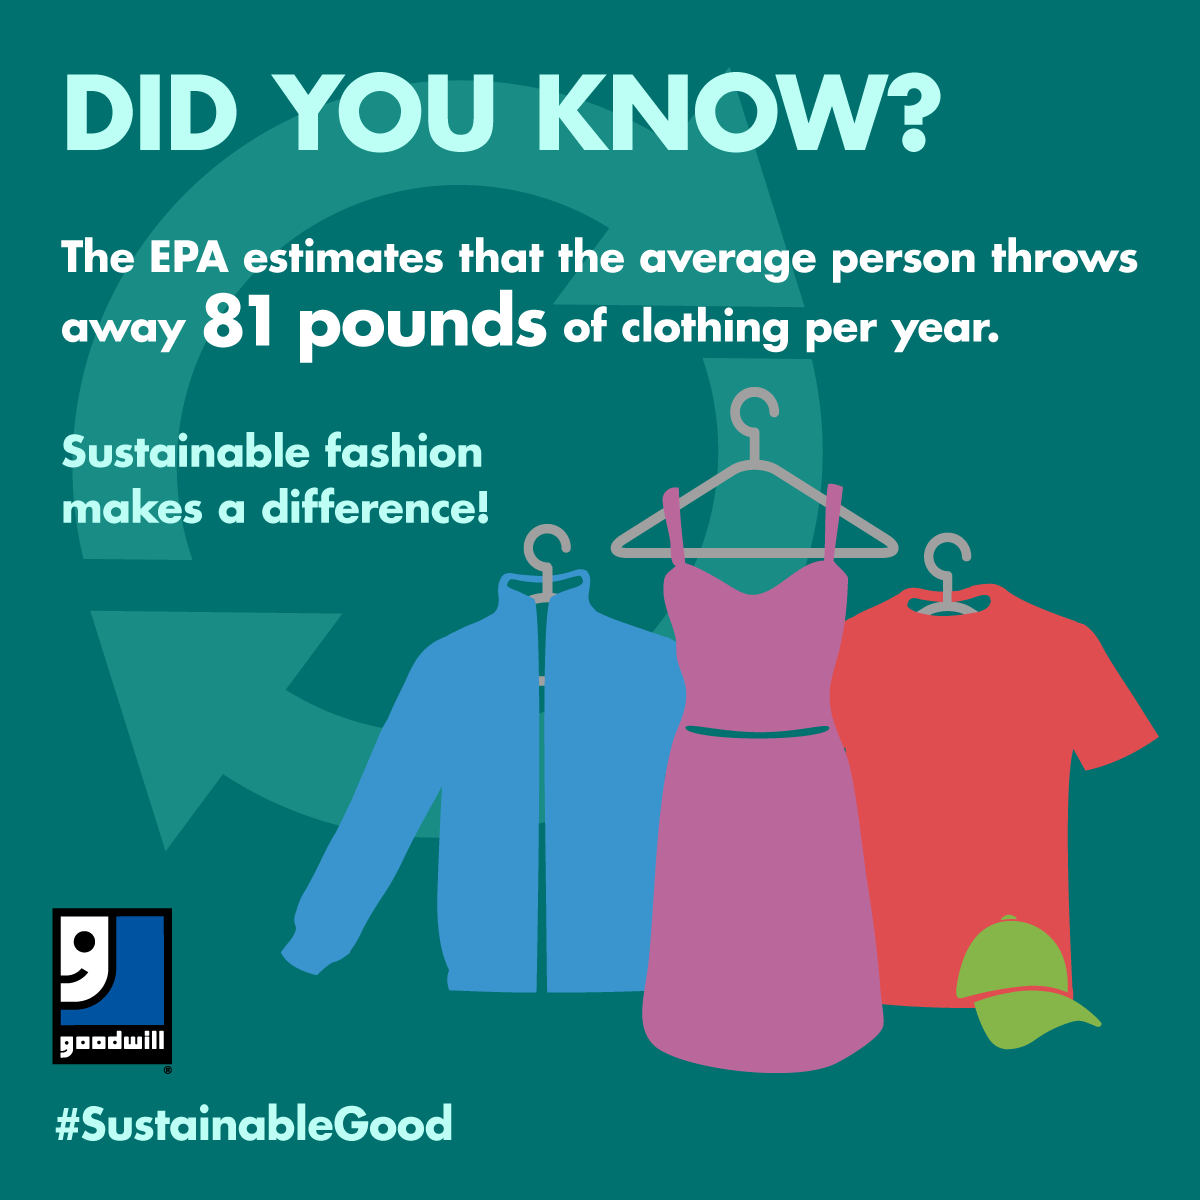 Did you know? The EPA estimates the average person throws away 81 pounds of clothing per year. Sustainable fashion makes a difference!